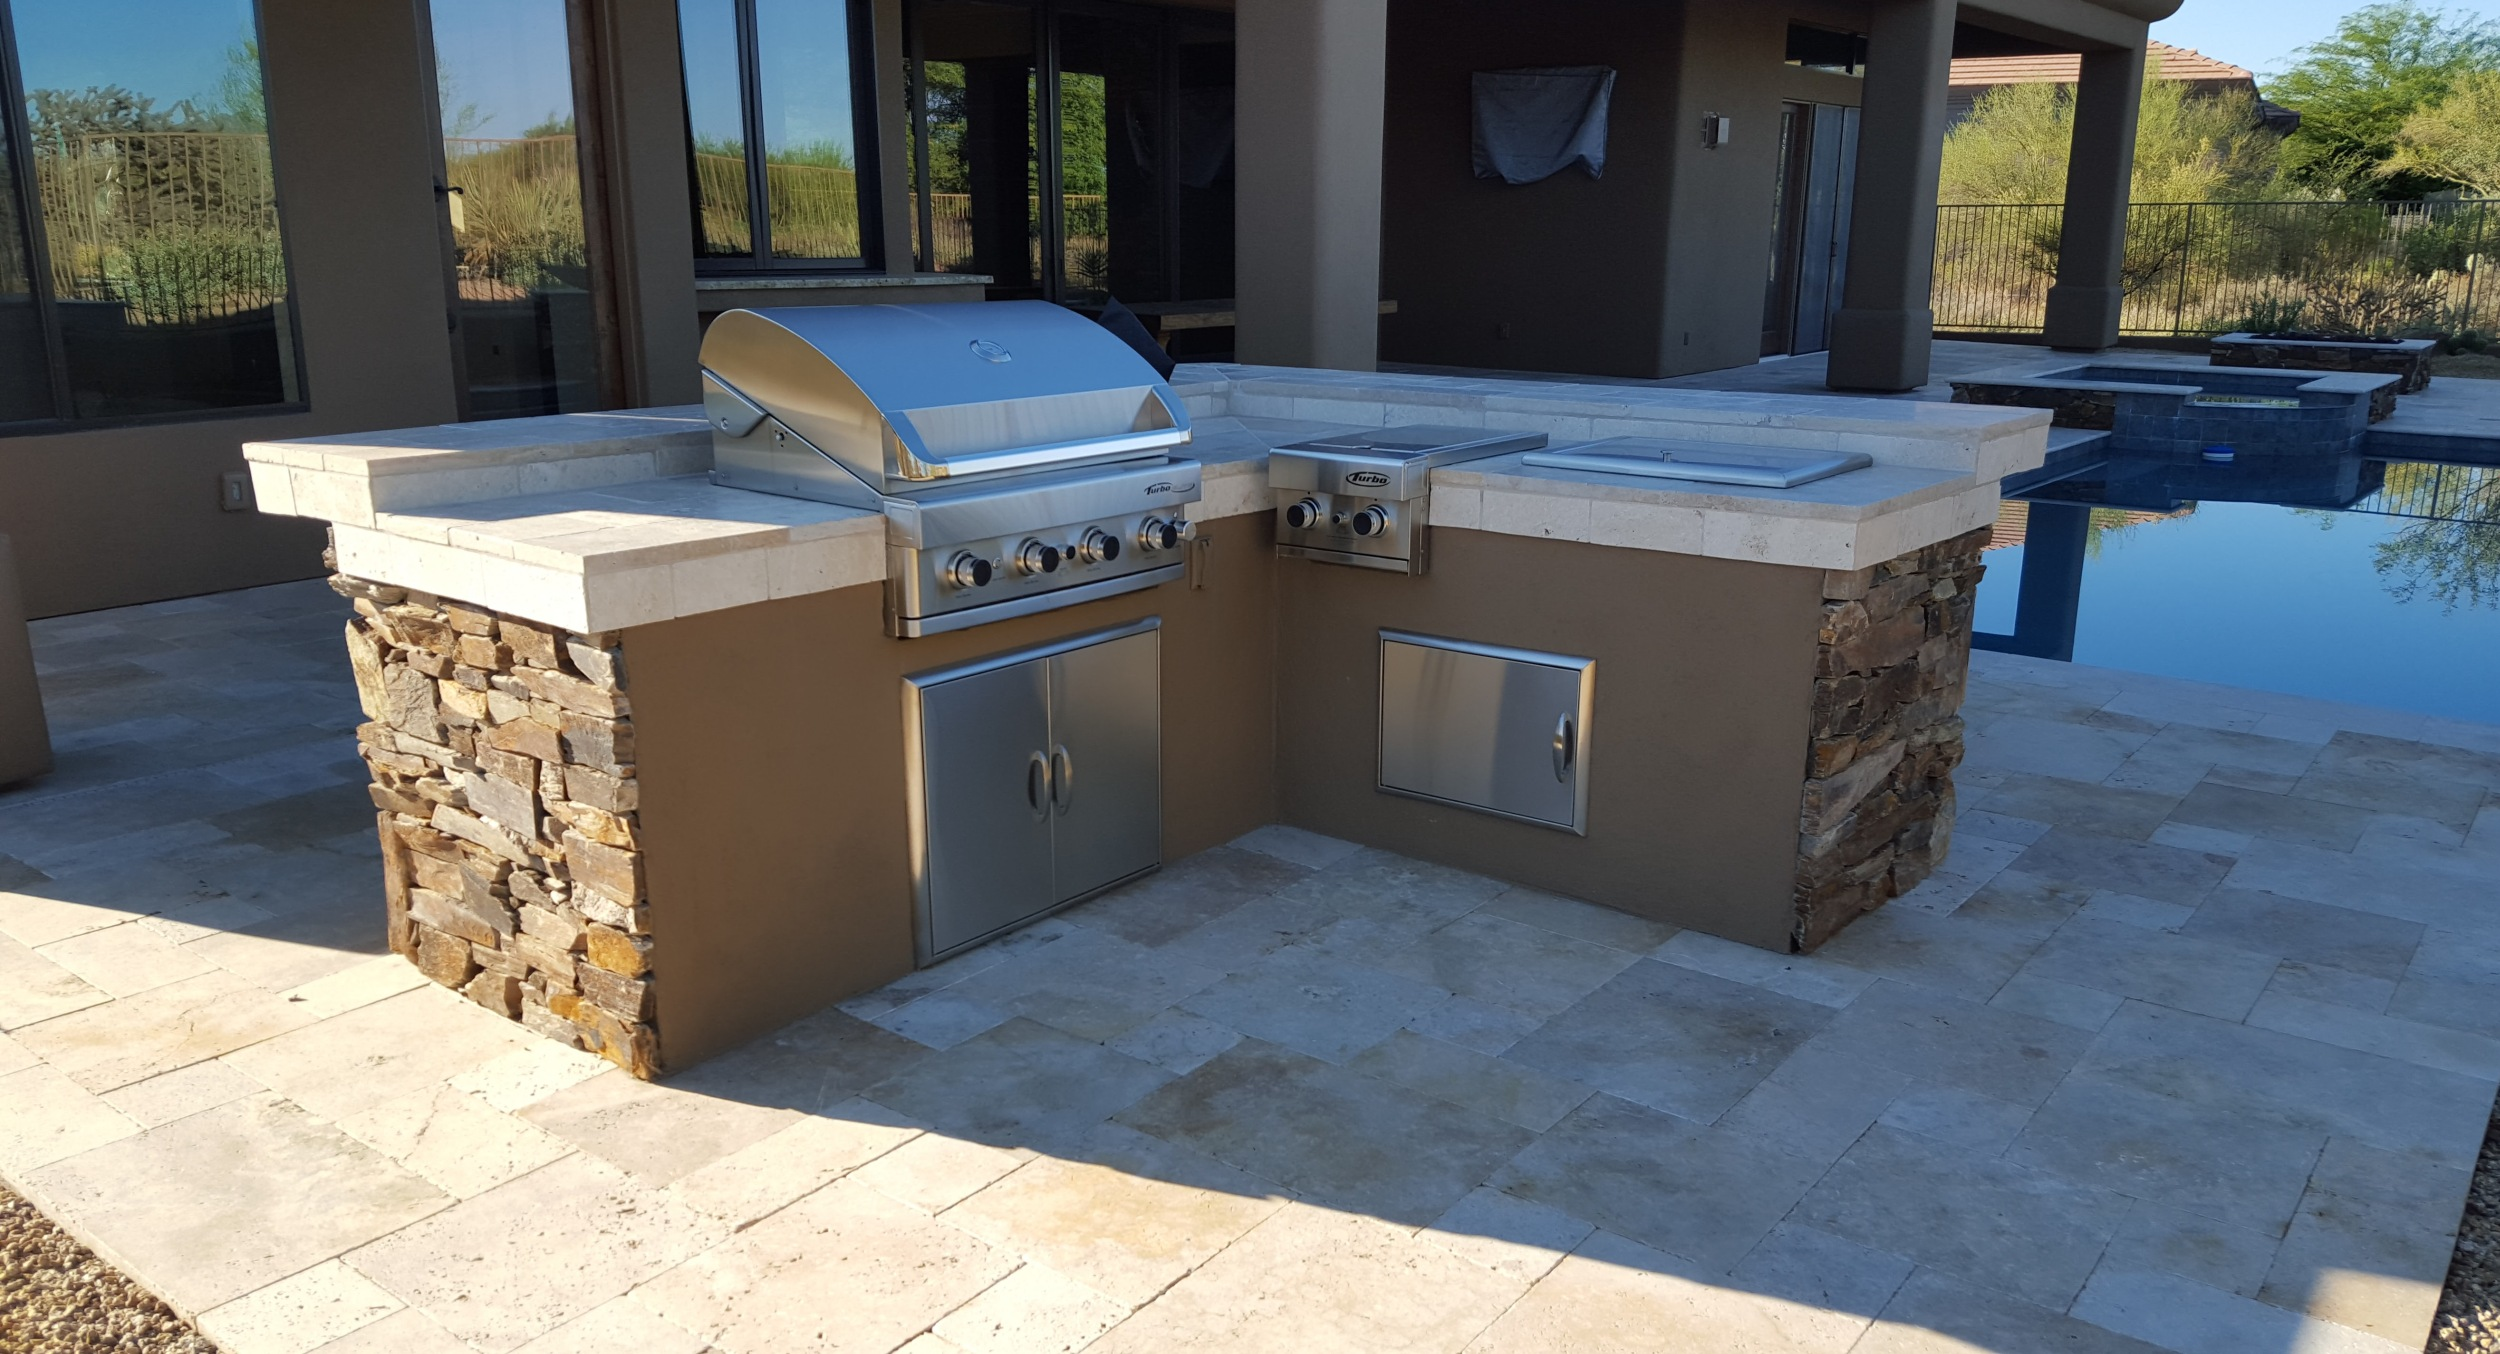 This built-in gas grill Scottsdale clients had us install on their new patio is a great looking combination of rustic stone facing, stucco, and a travertine counter. The wrap around bar is on the pool side of the unit.